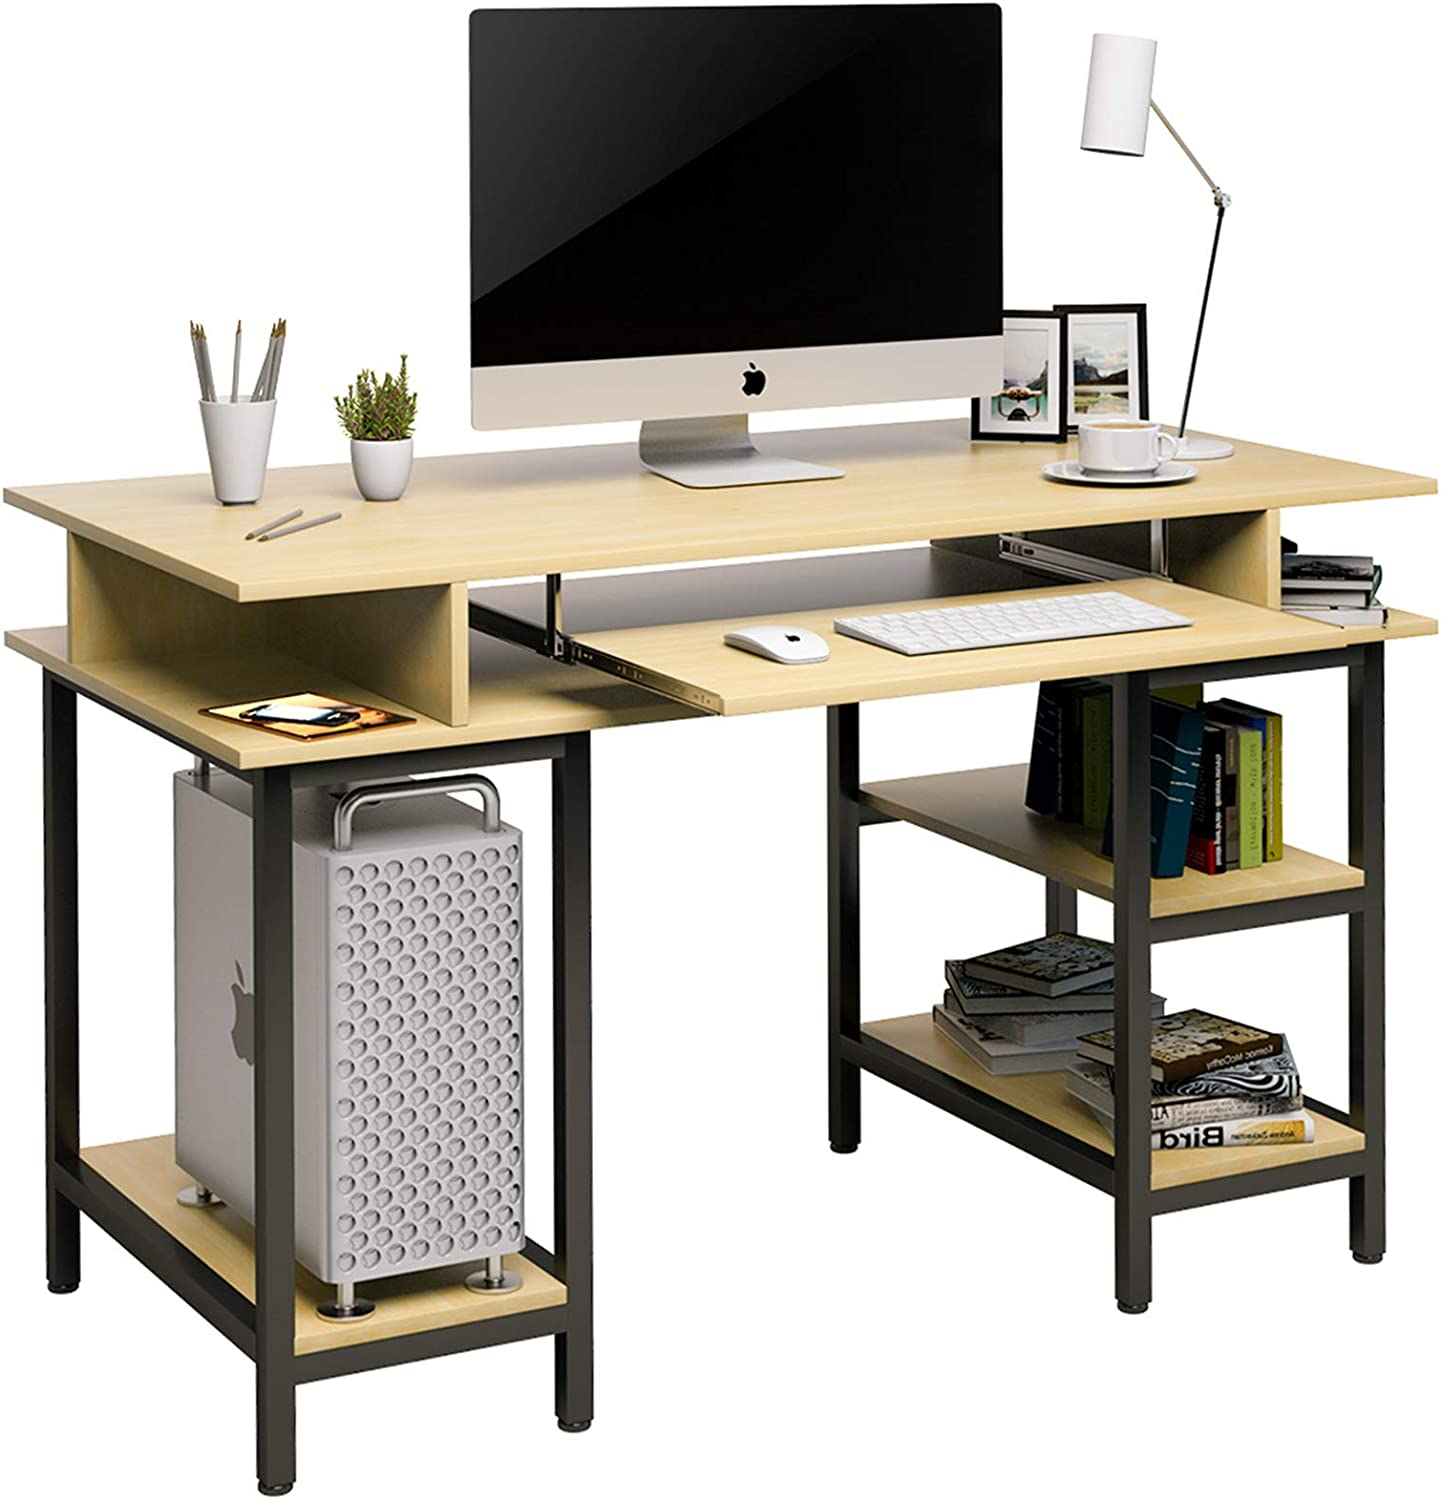 Mecor Computer Desk Study Writing Table for Home Office with 4 Storage Positions, and Keyboard Tray Computer Office Desk PC Laptop Table Study Work-Station Home Office Furniture